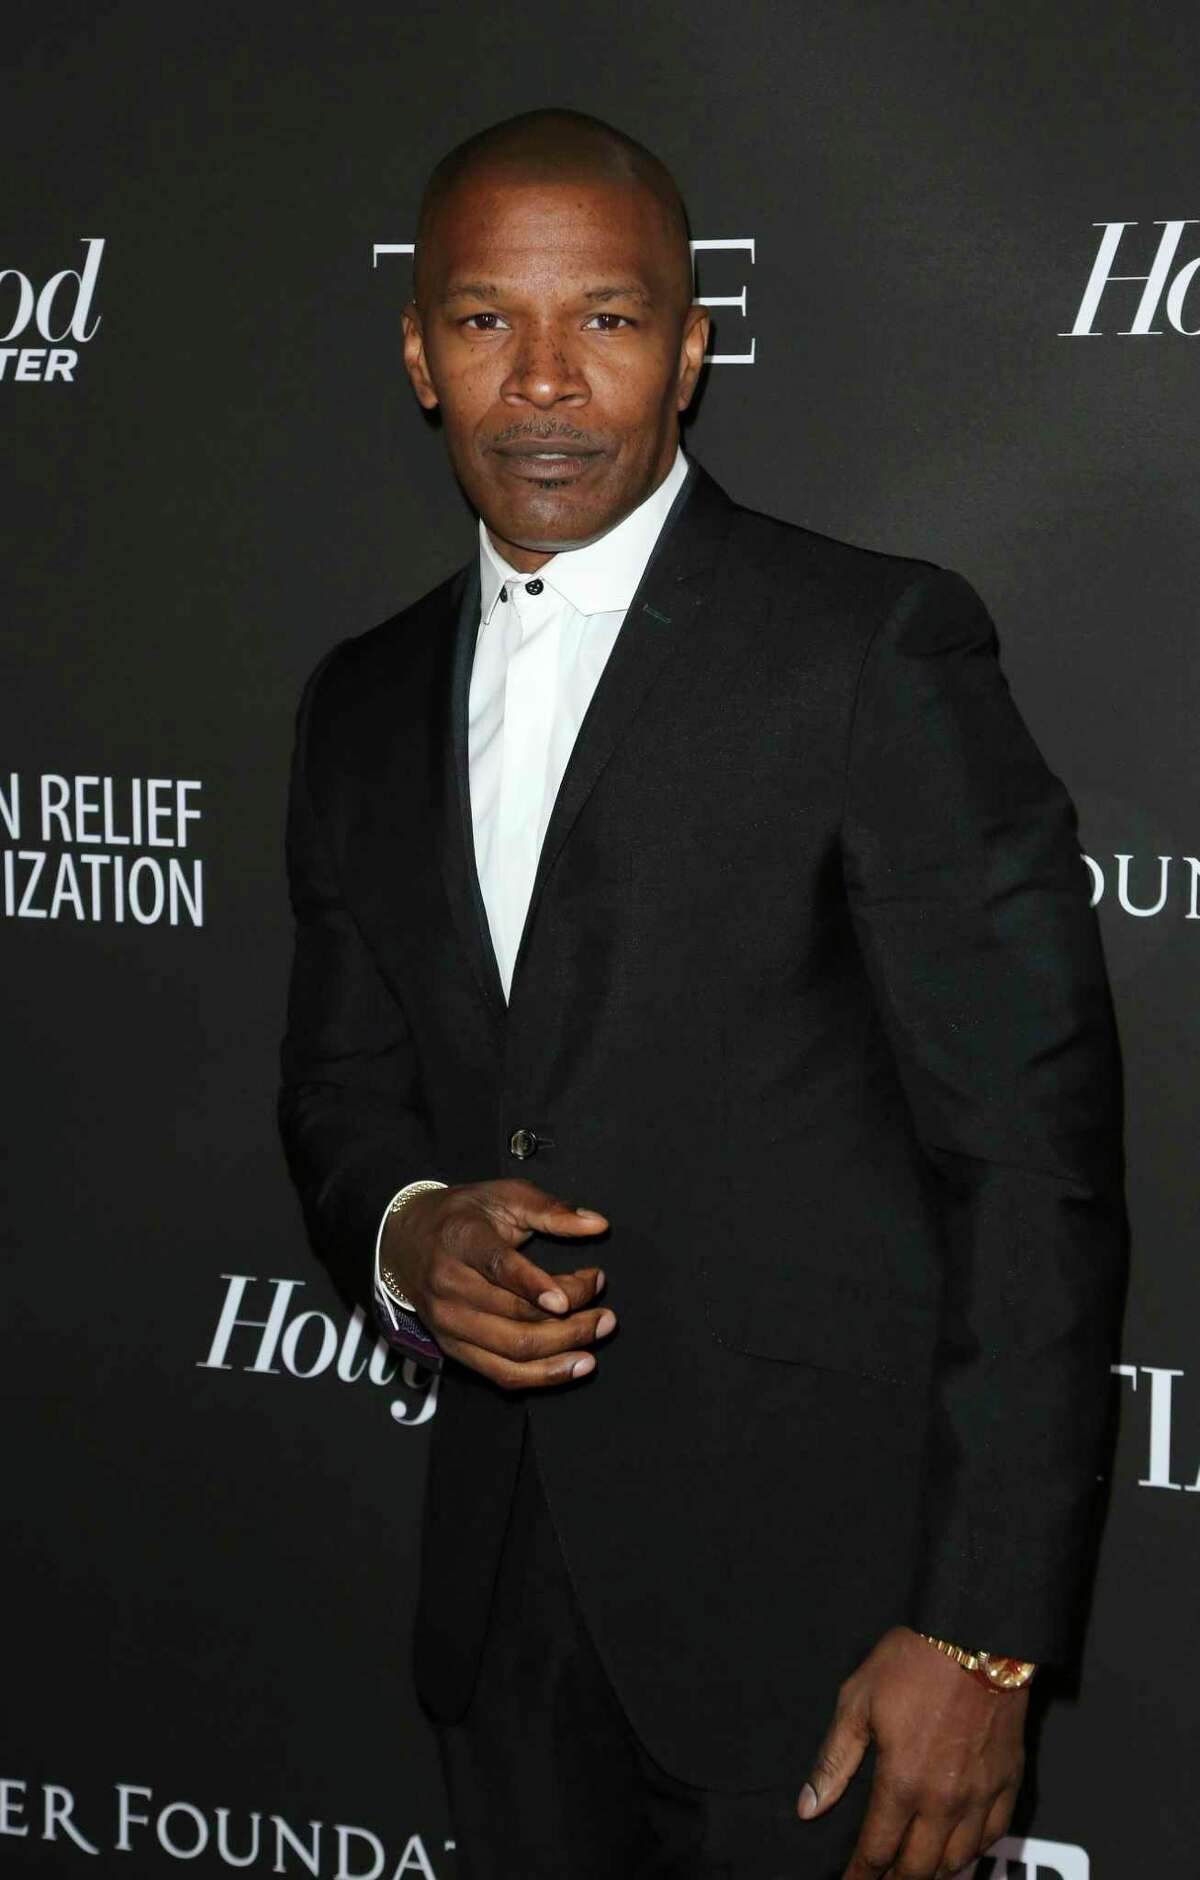 Jamie Foxx arrives at the 2019 Sean Penn J/P HRO & Disaster Relief Organizations Gala at The Wiltern Theatre on Saturday, Jan. 5, 2019, in Los Angeles. (Photo by Willy Sanjuan/Invision/AP)